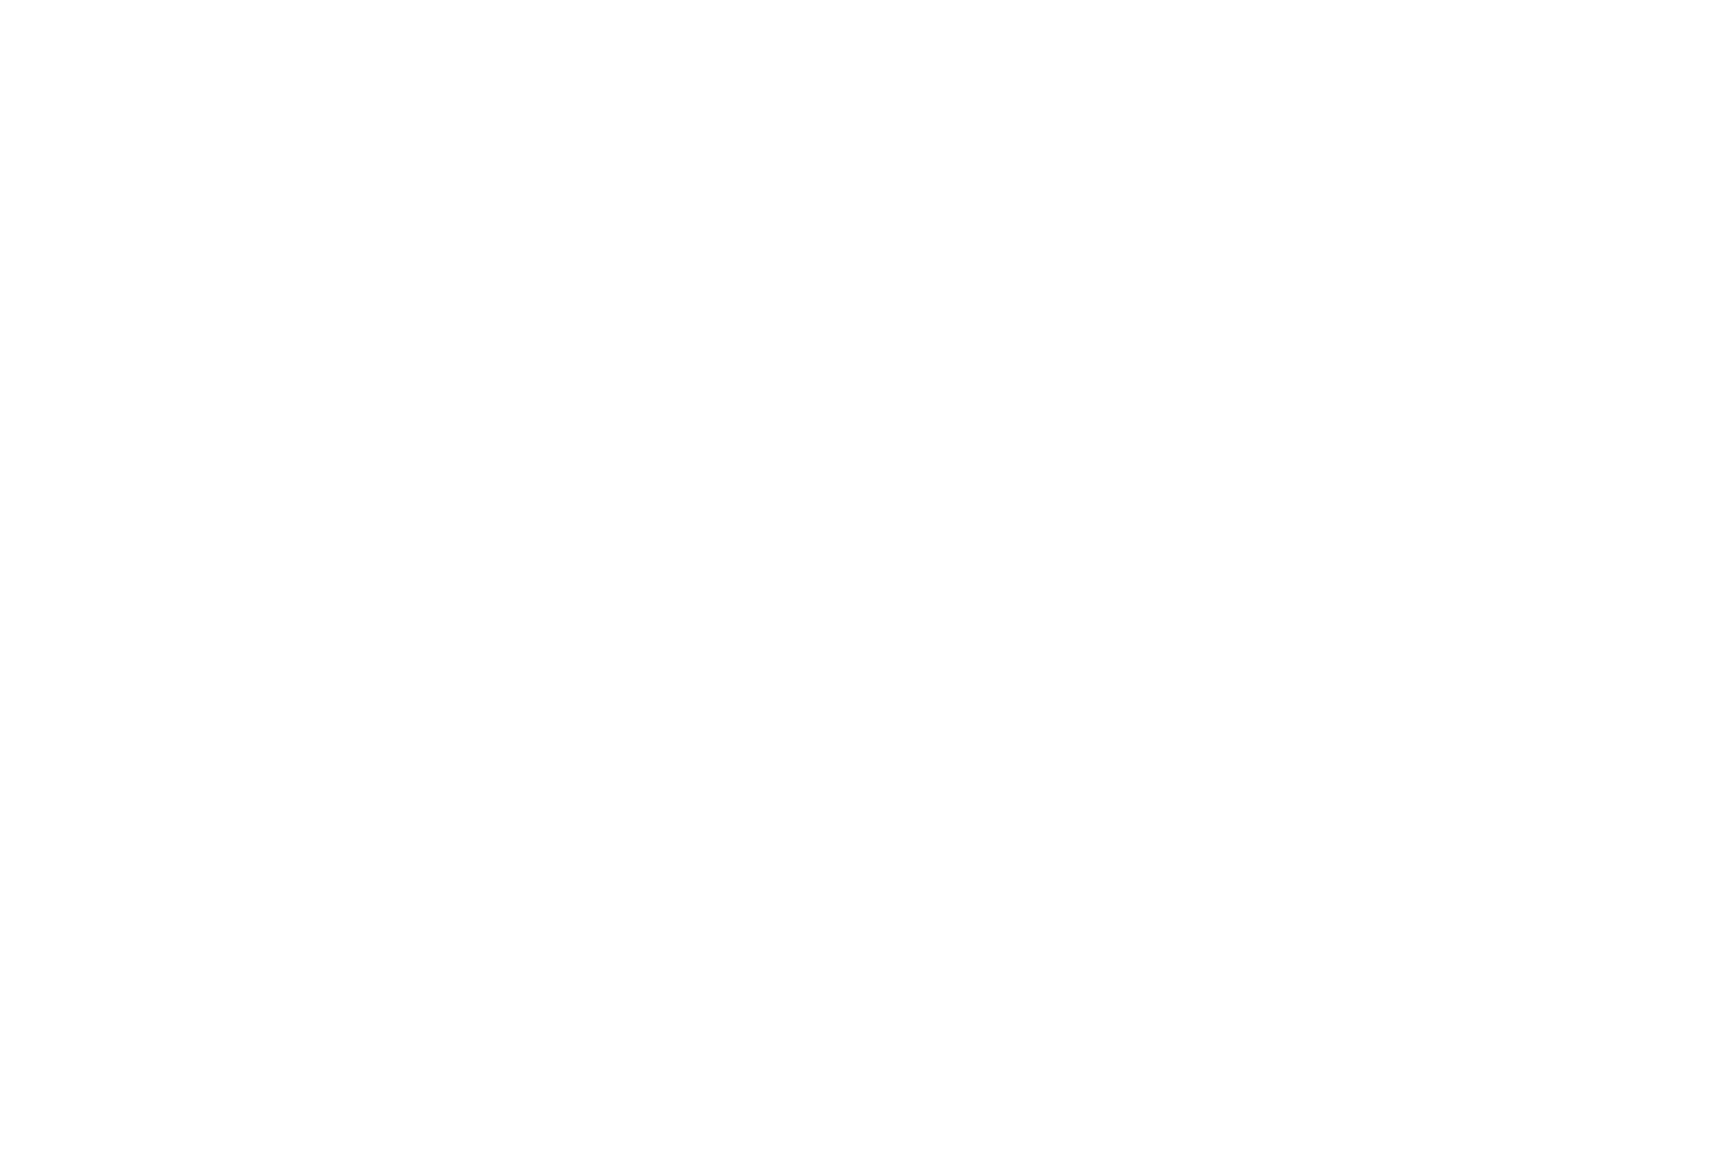 OFFICIAL SELECTION - LA Under the Stars Film Festival - 2020 - WHITE